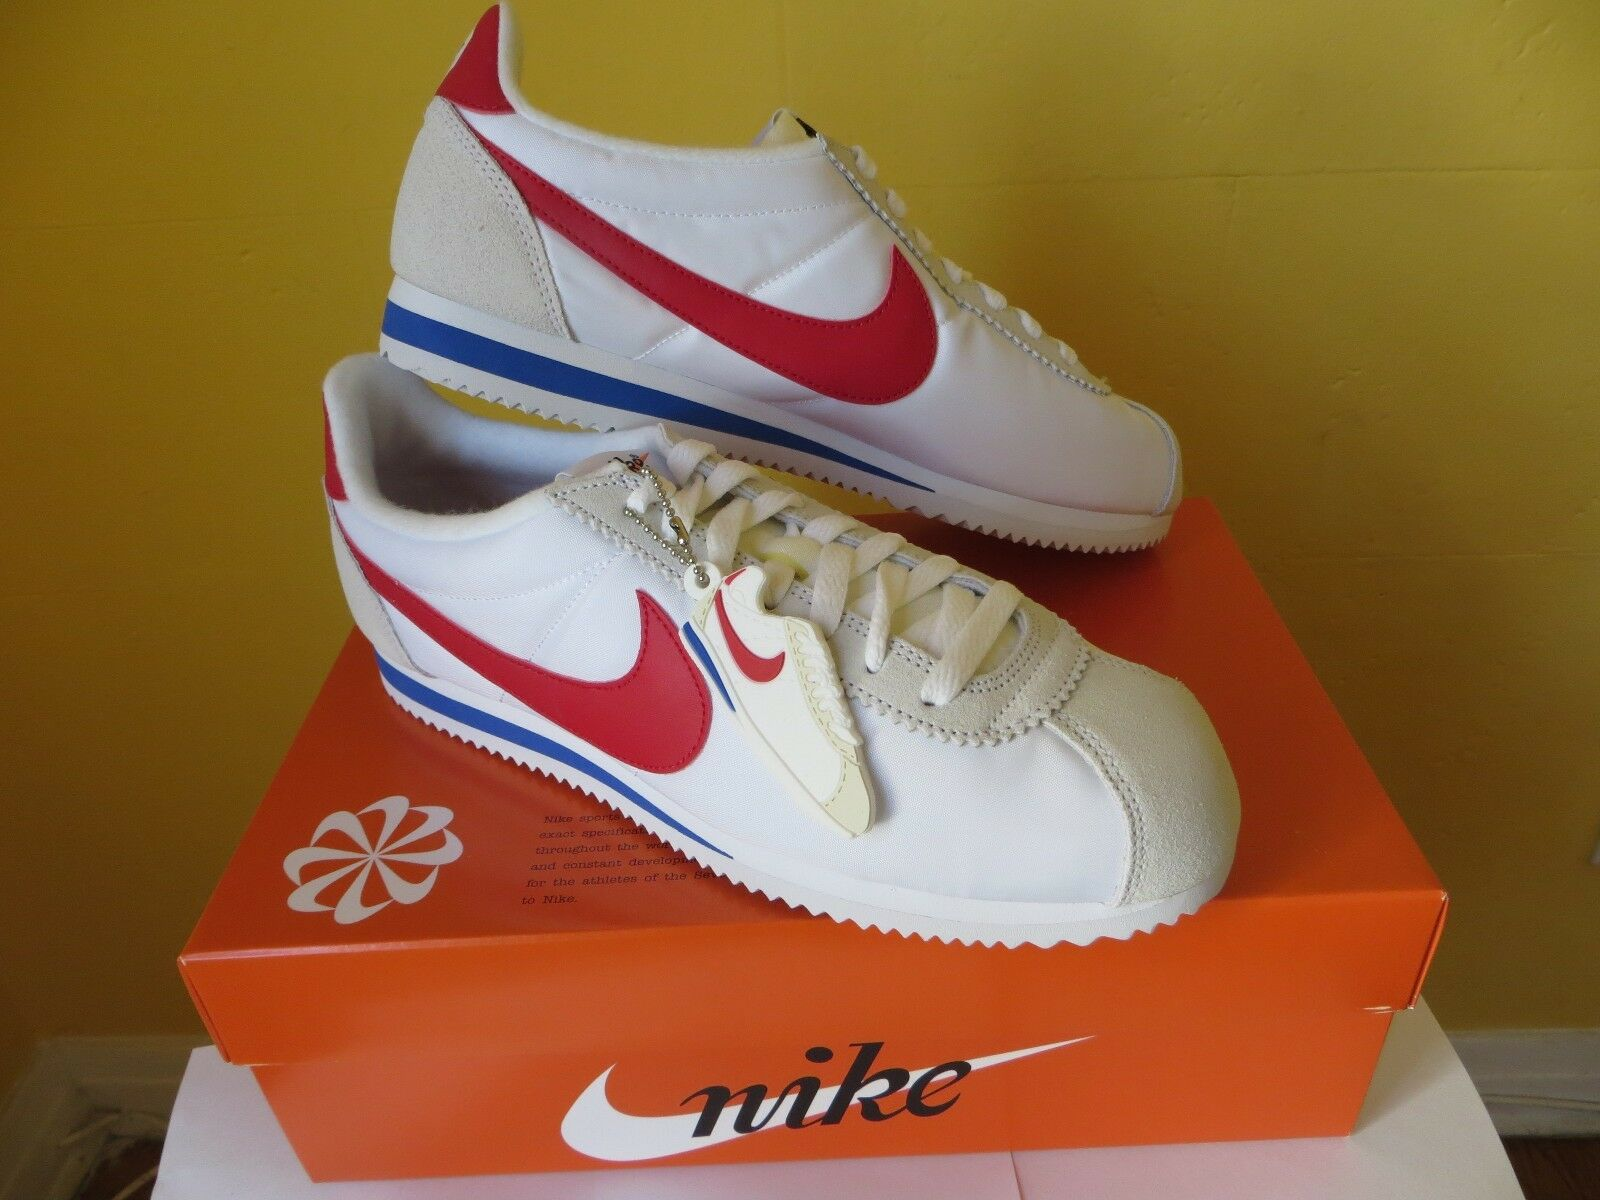 Nike Classic Cortez Nylon Premium QS SZ 9.5 shoes NIB with bluee Nike Bag